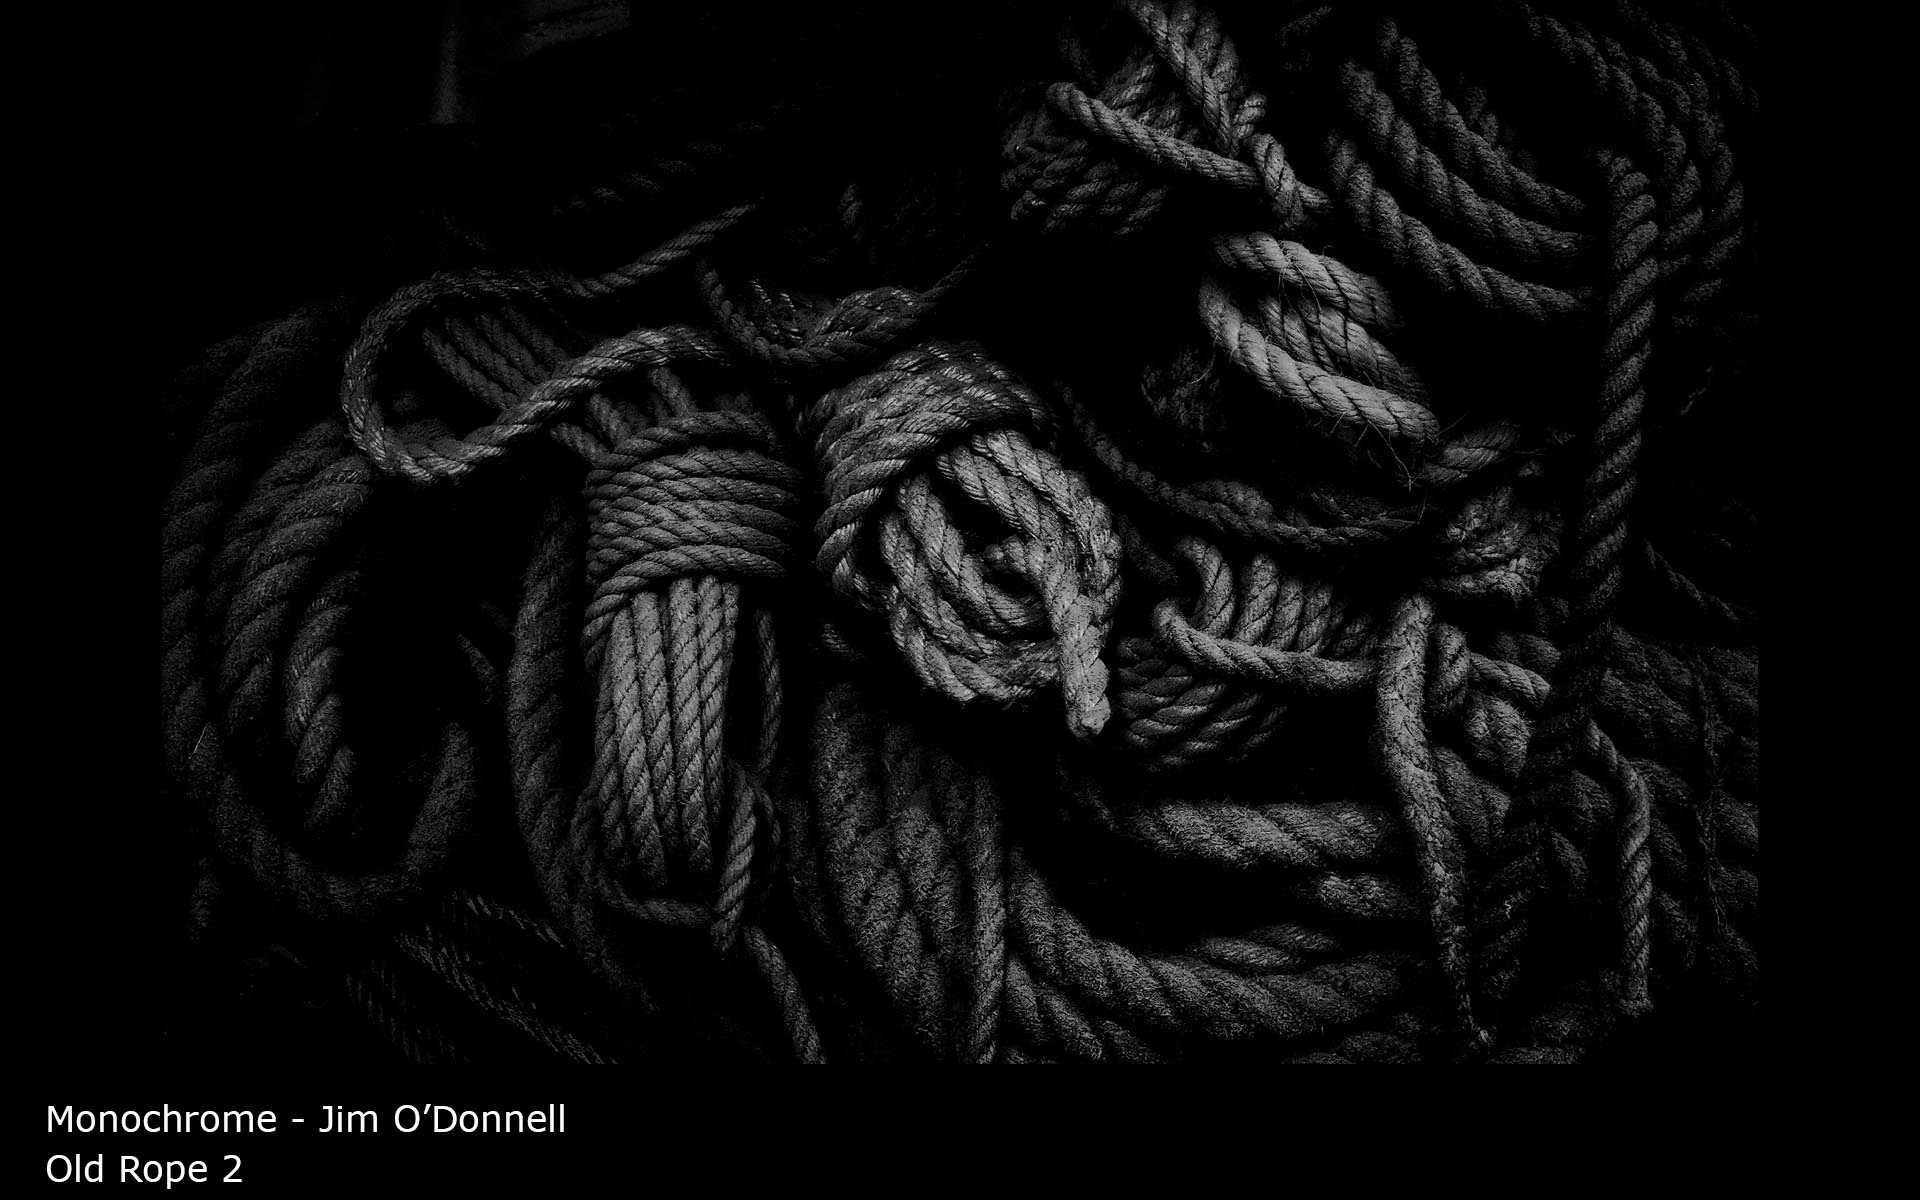 Old Rope 2 - Jim O'Donnell